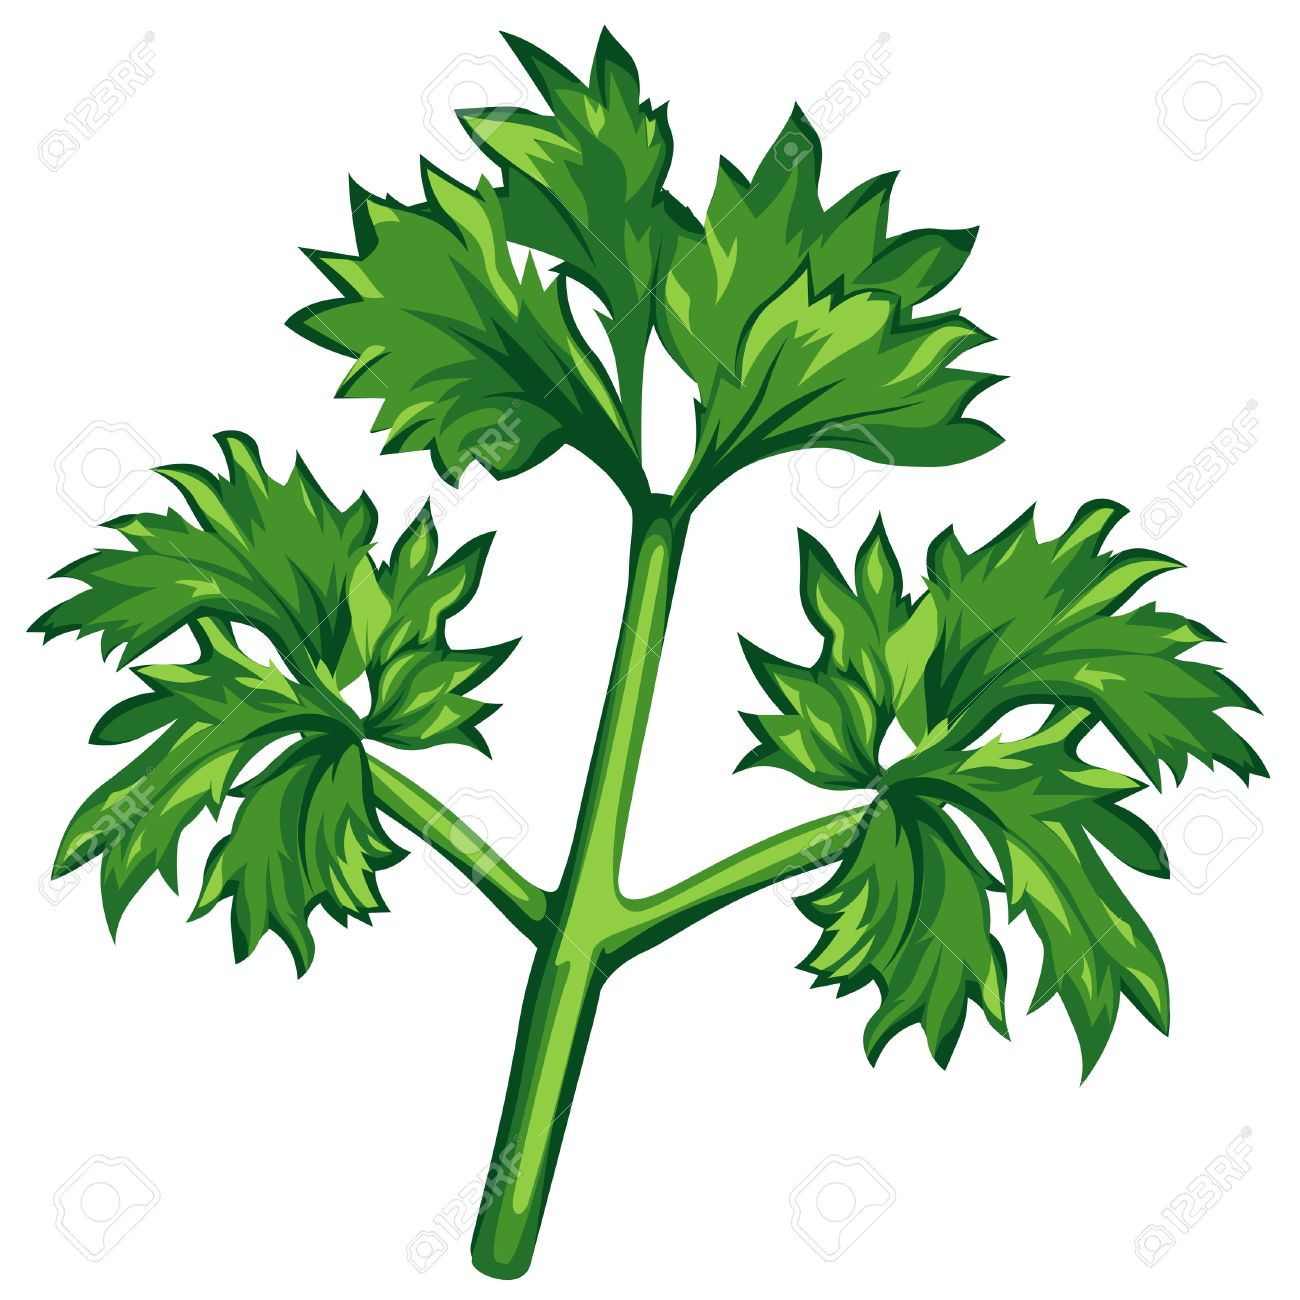 Parsley Illustration Petirsil clipart - Cli...